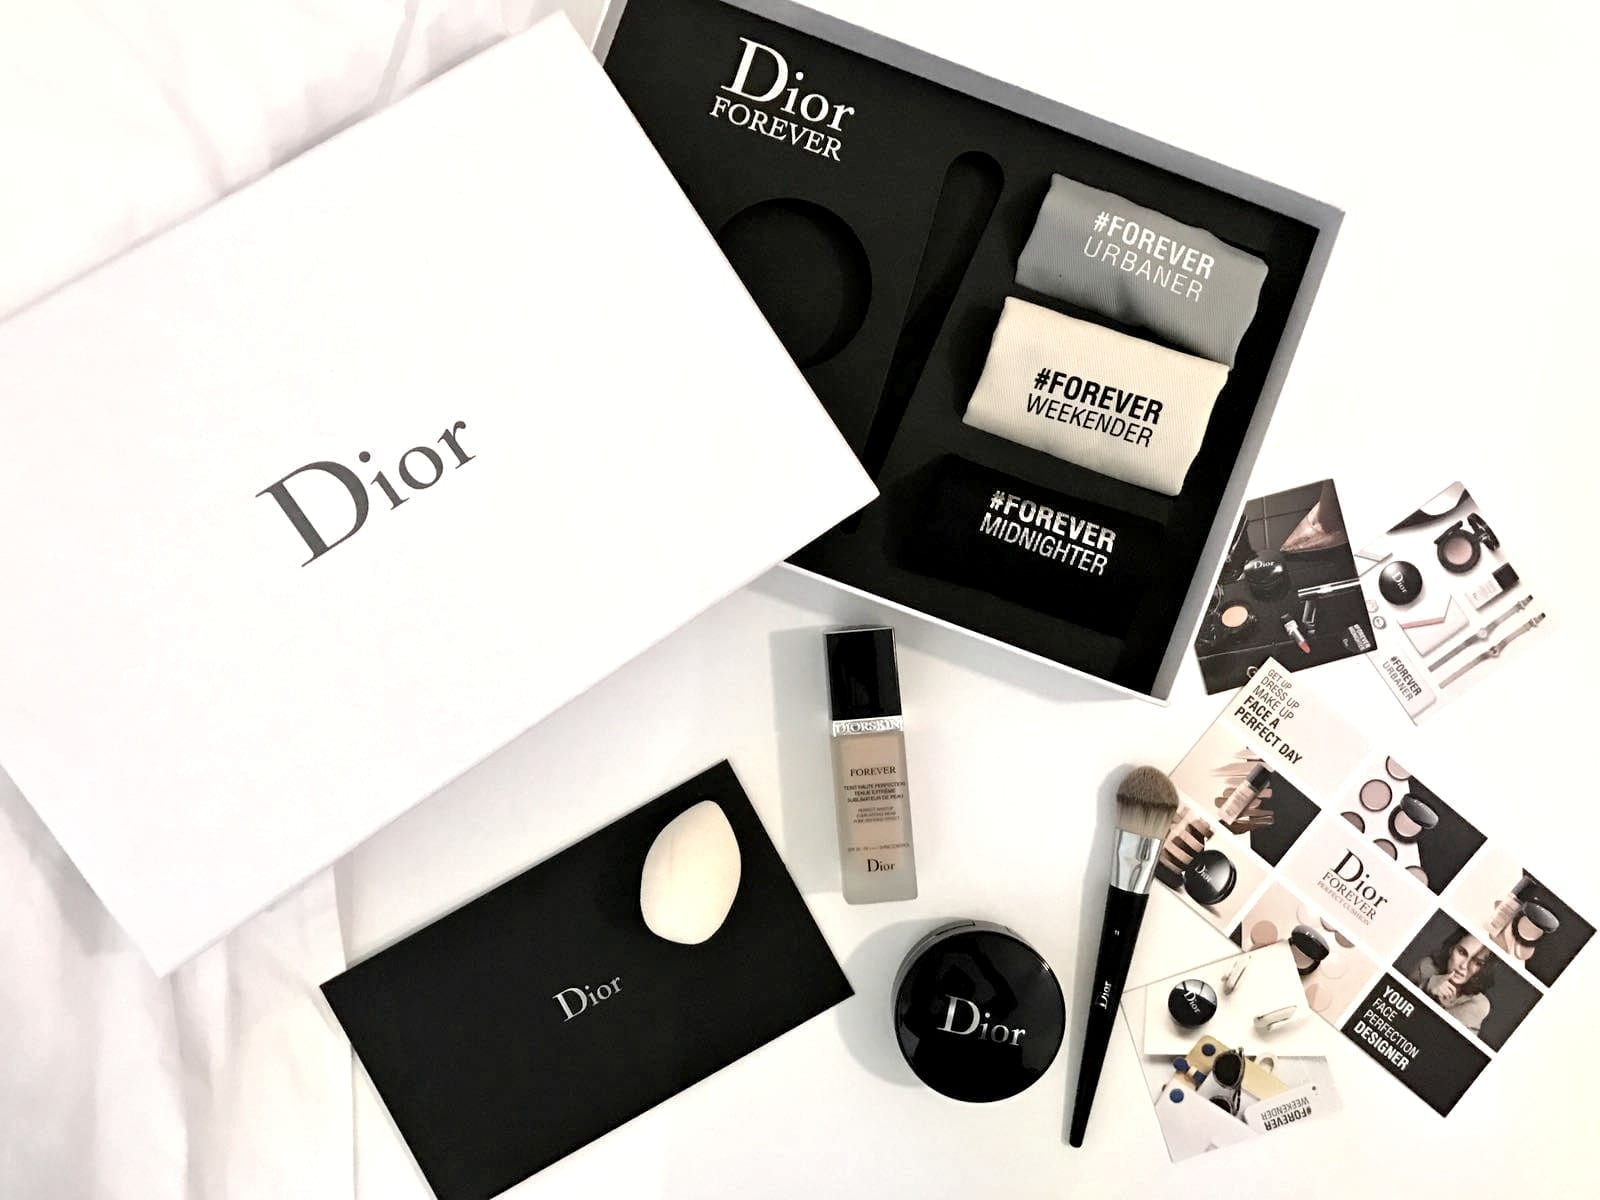 Diorskin Forever Perfect Cushion, theladycracy.it, elisa bellino, fashion blog 2017, fashion blogger italiane 2017, fashion blogger famose 2017, fashion blogger più seguite 2017, dior make up 2017, fondotinta dior 2017, blogger moda 2017